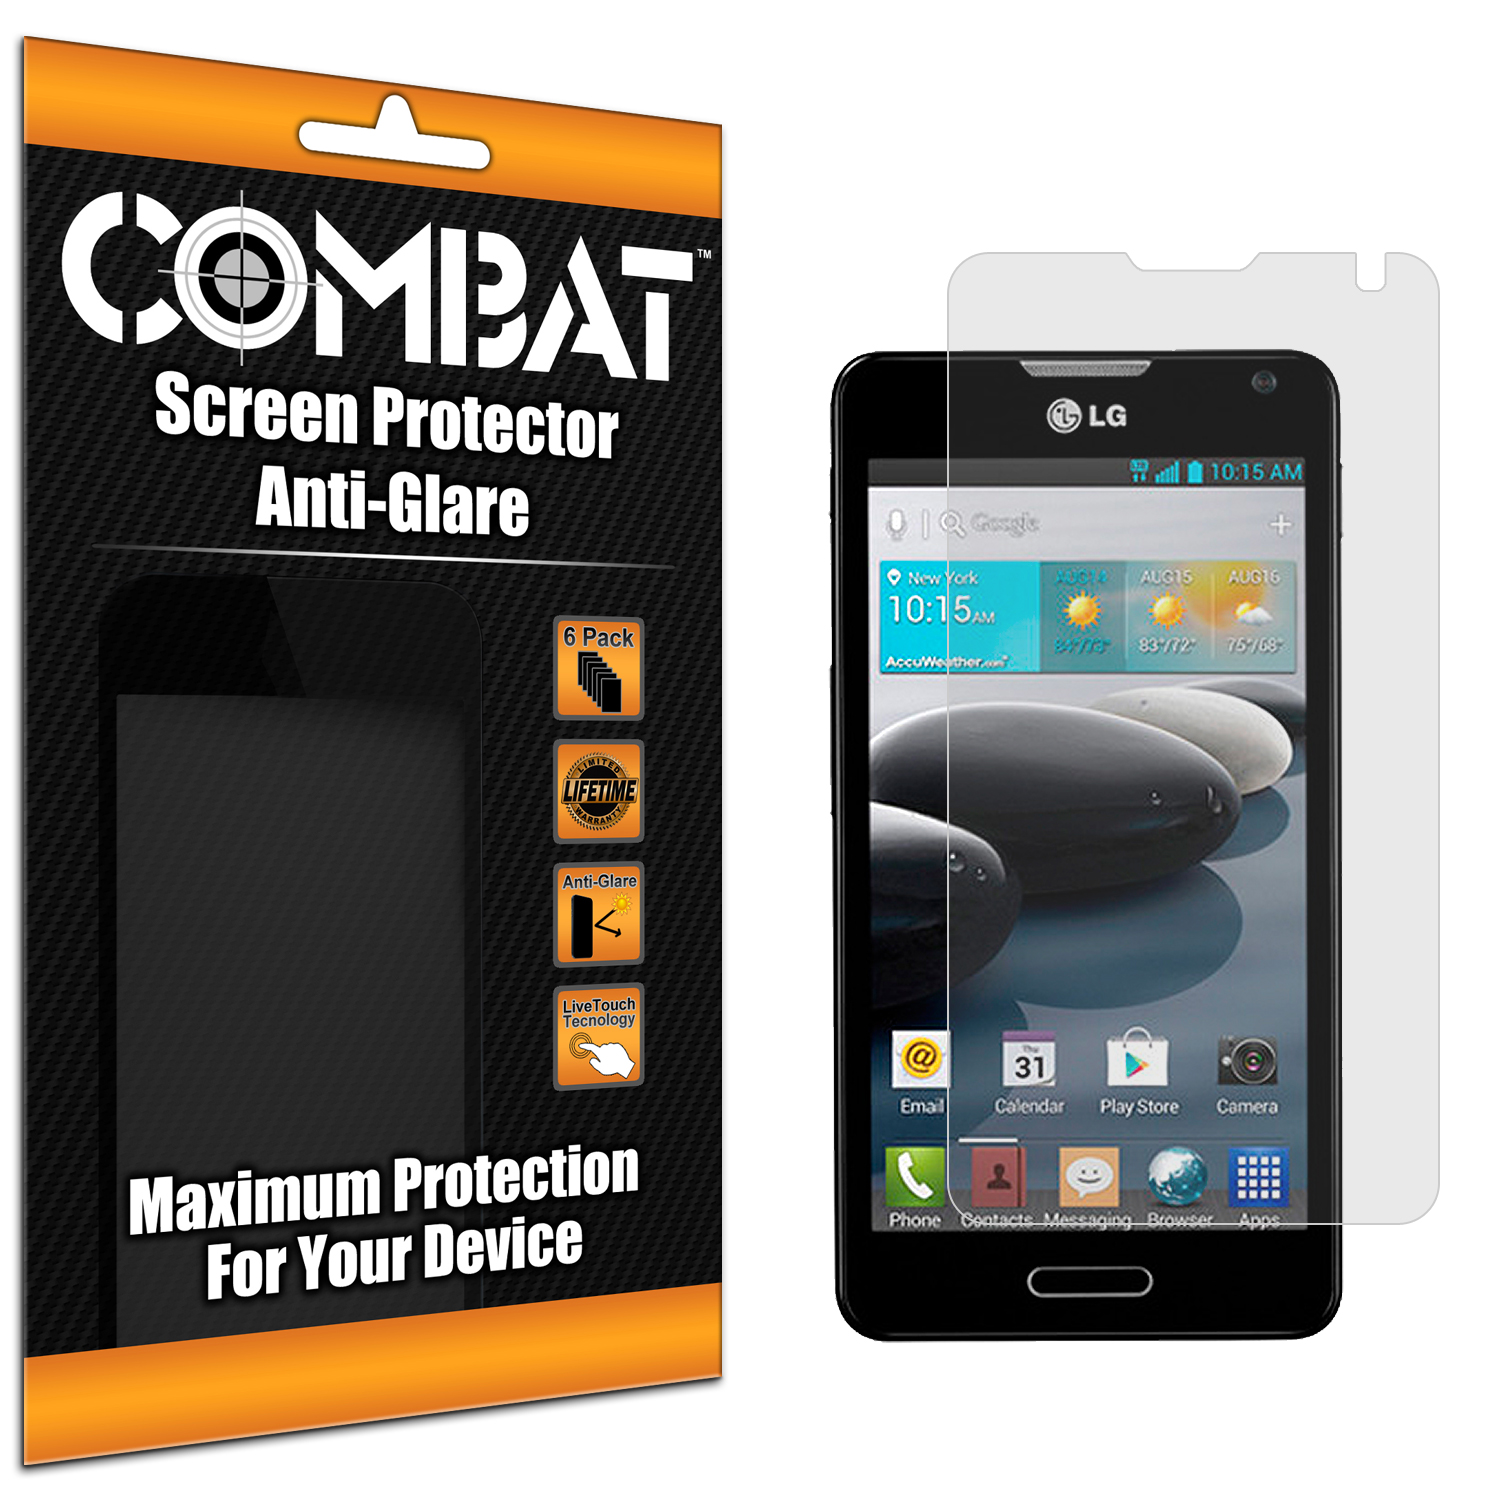 LG Optimus F6 D500 Combat 6 Pack Anti-Glare Matte Screen Protector